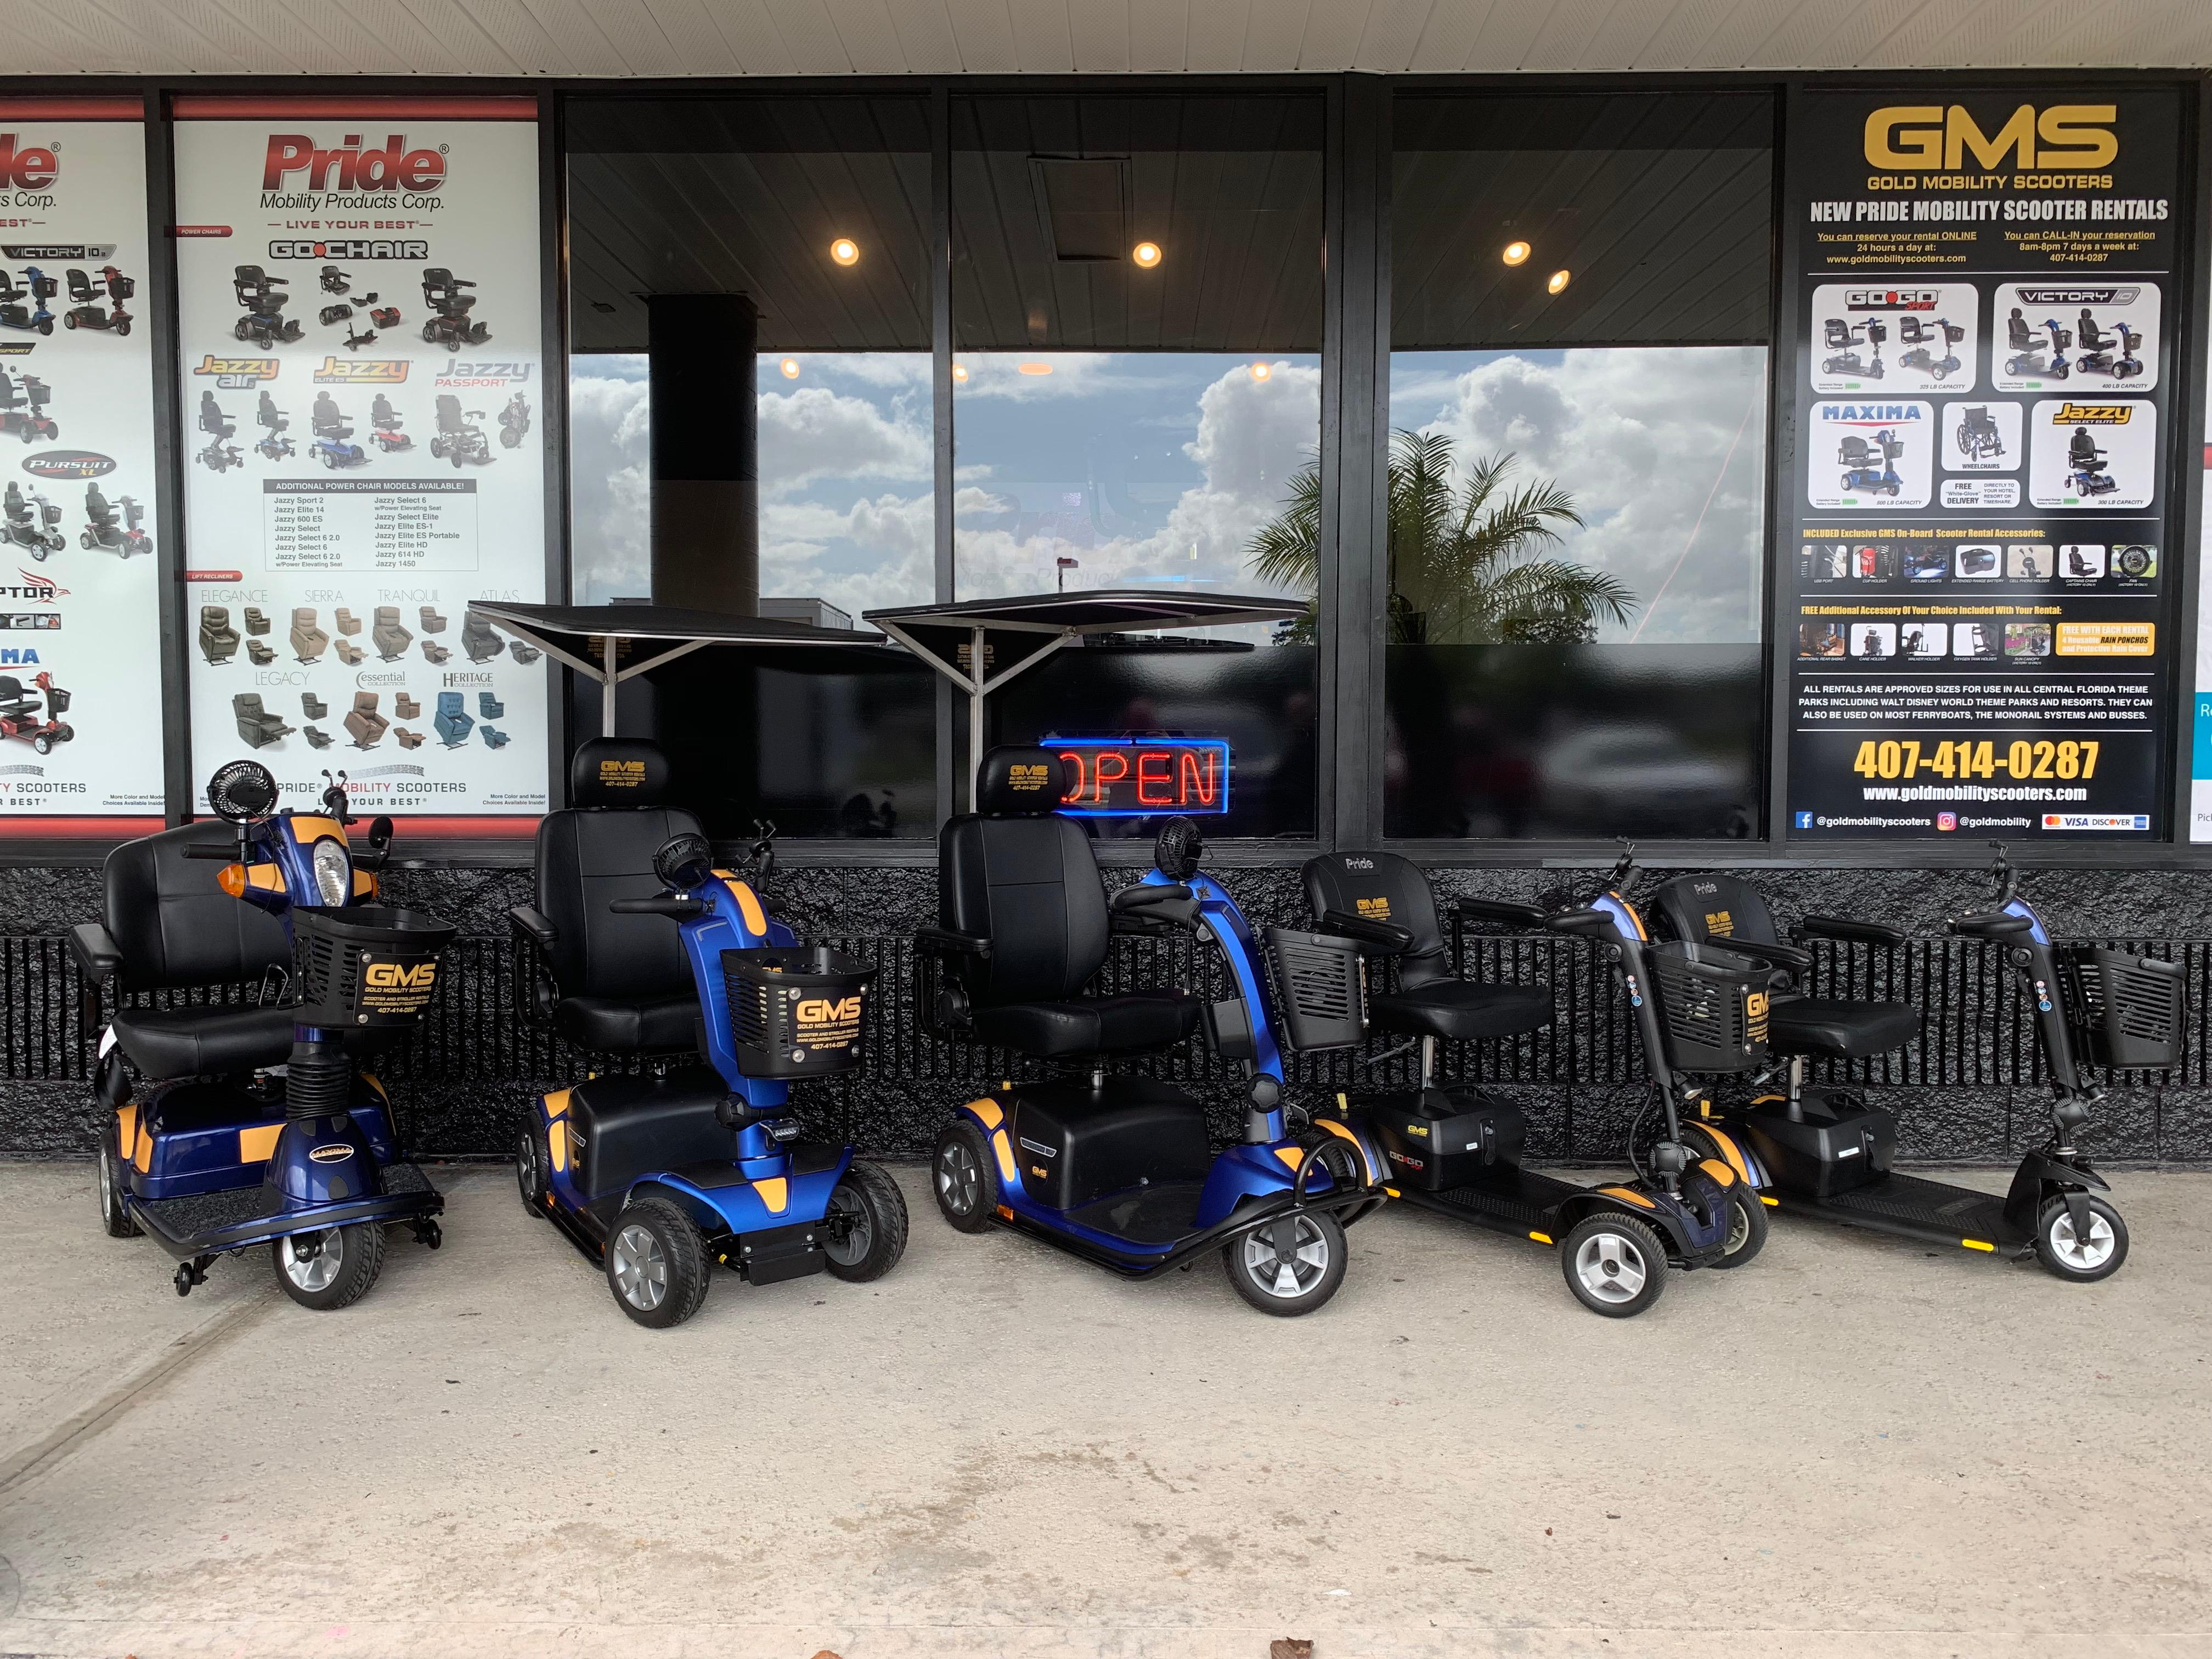 Gold Mobility Scooters provides mobility scooter rental for Orlando area and Theme Park guests. We offer free delivery to most all hotels and Resorts in the Central Florida area. Best apples for apples rental prices, premium brand new mobility scooters for rent, Free Delivery and Pickup, Free Damage Waver, Free Accessories, and Custom upgrades. 5 star rated scooter rental company. Scooter Rental info at goldmobilityscooters.com or Call us at 407-414-0287